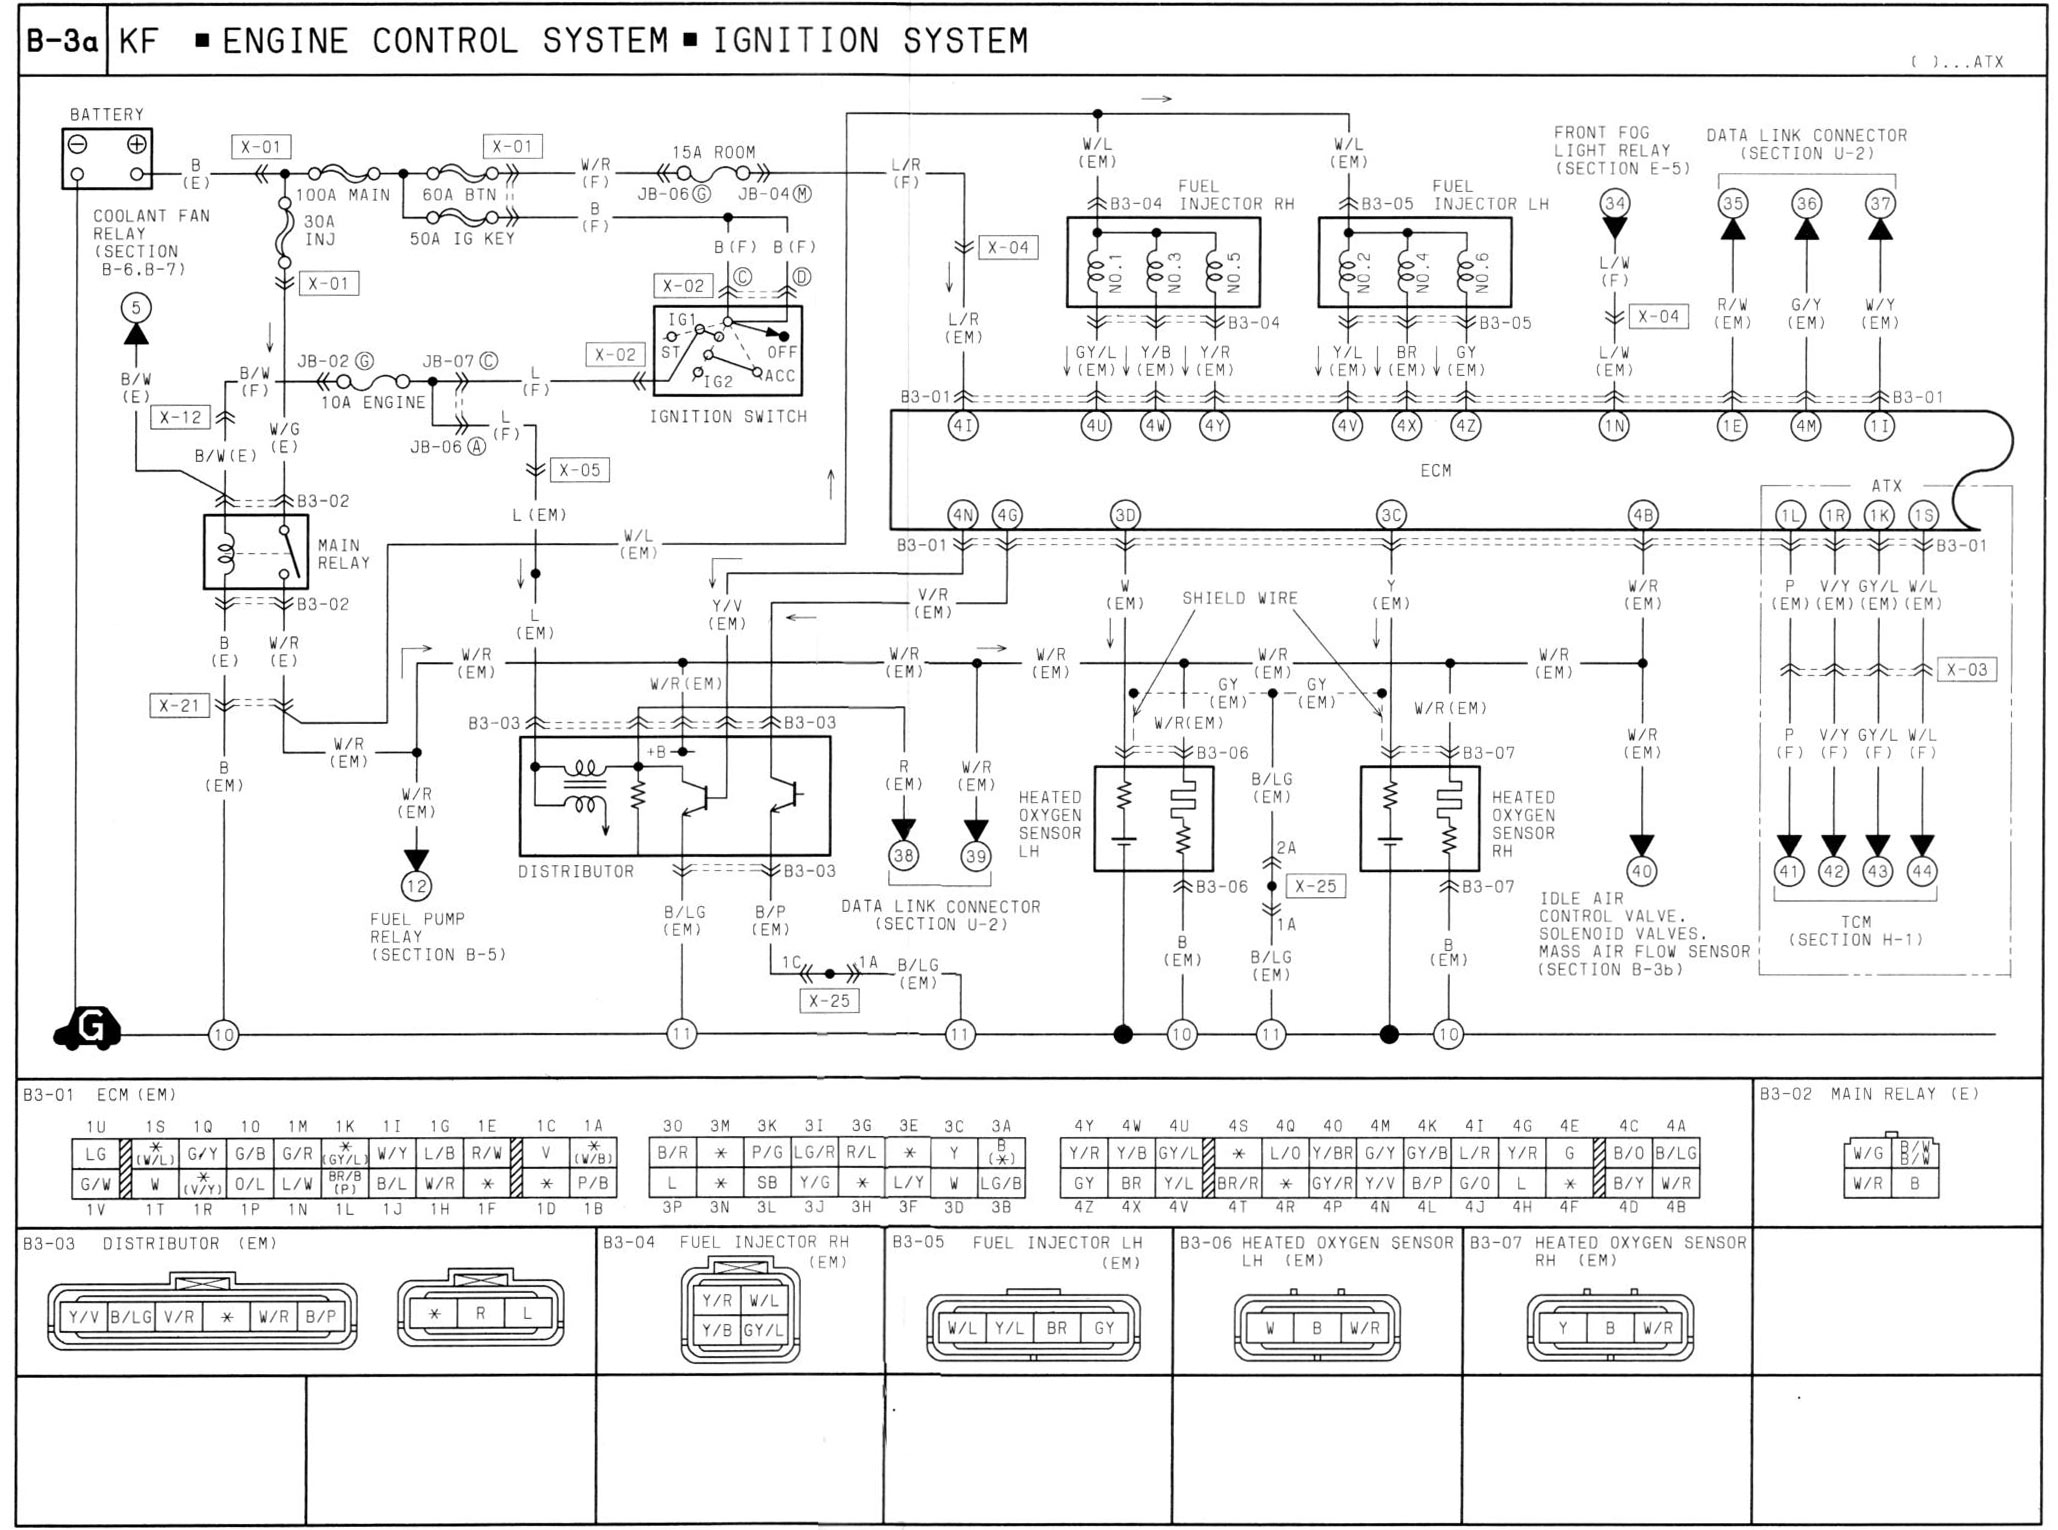 lantis 2 0 v6 wiring diagram needed astinagt forums mazda 323f wiring diagram mazda 323f wiring diagram #4